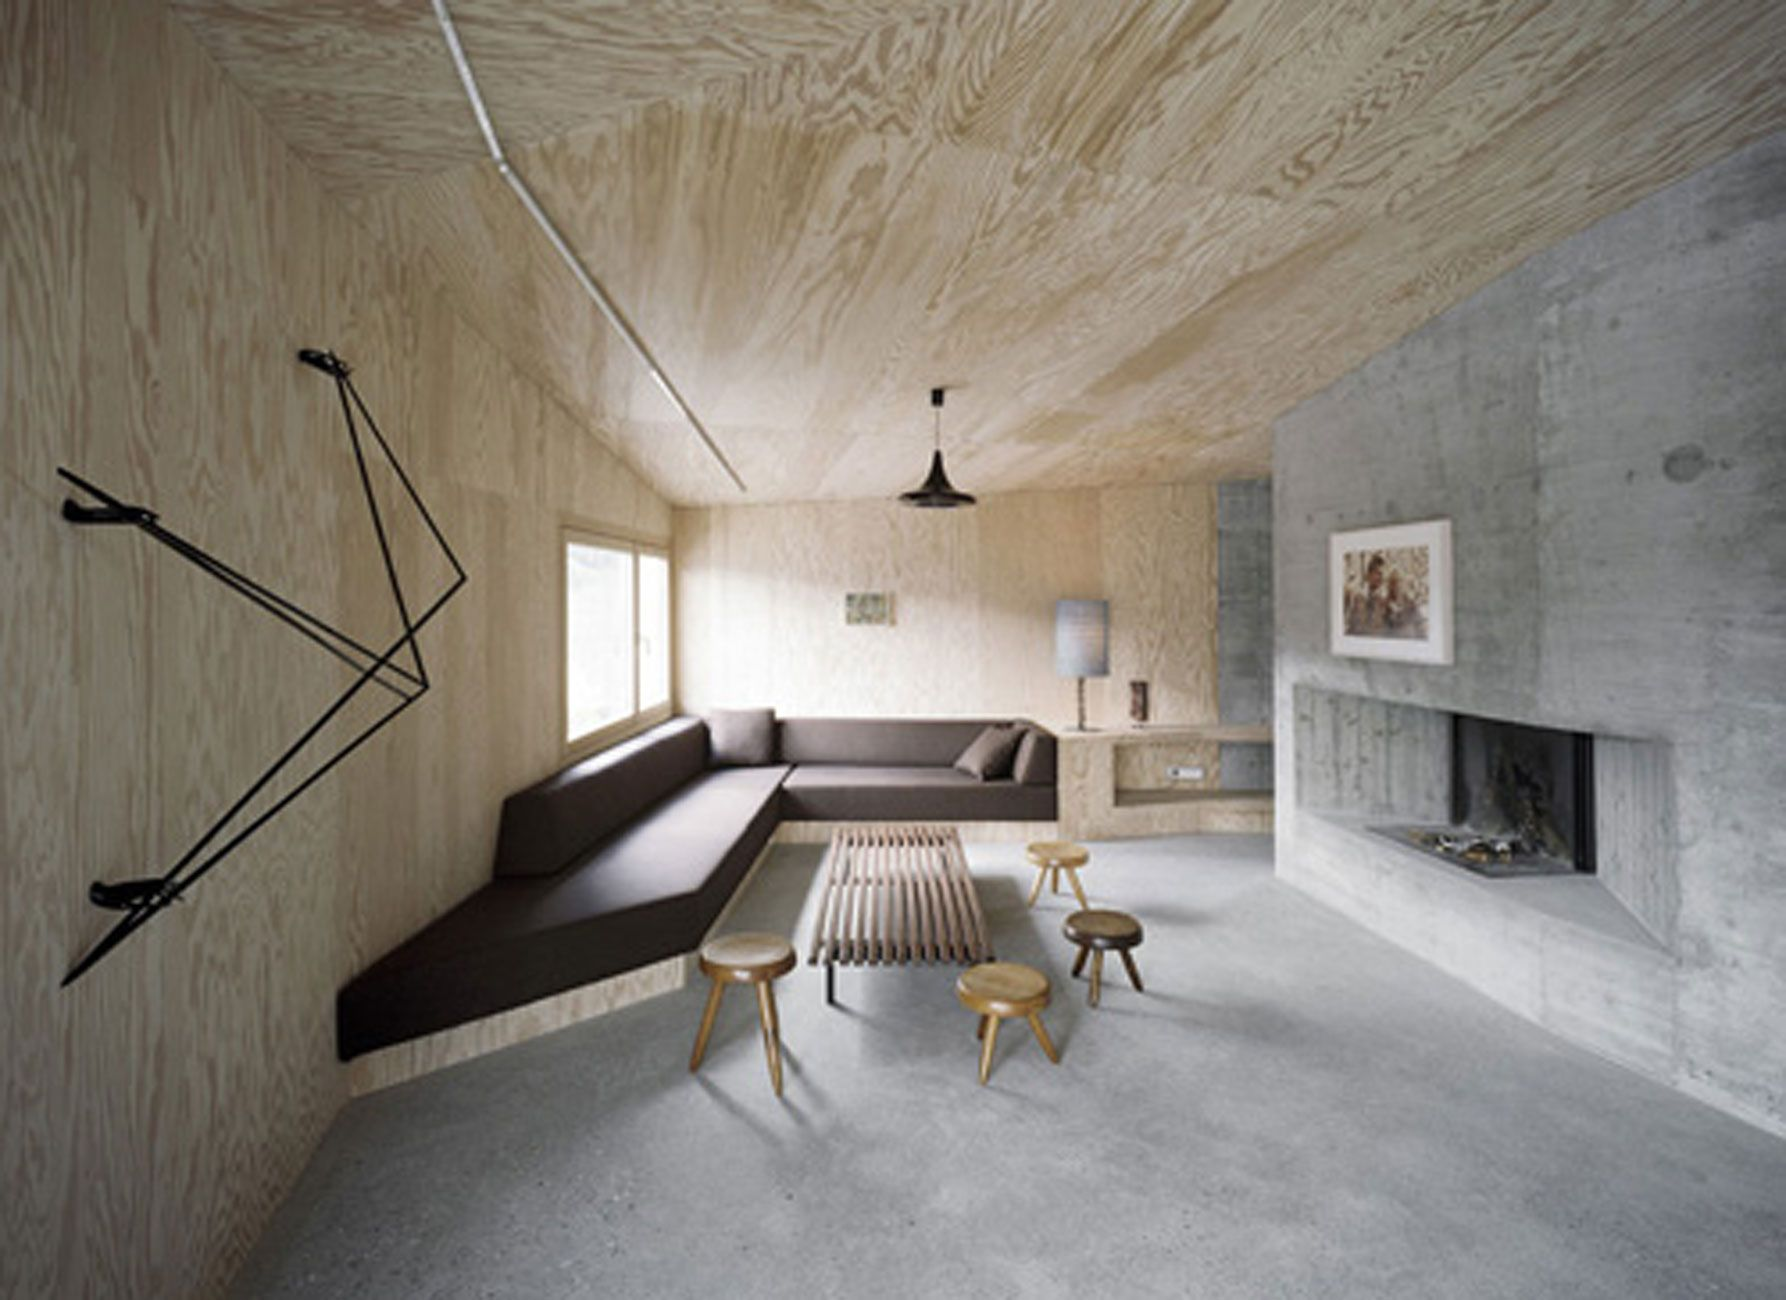 Solid concrete house architecture and minimalist interior for Minimalist wall